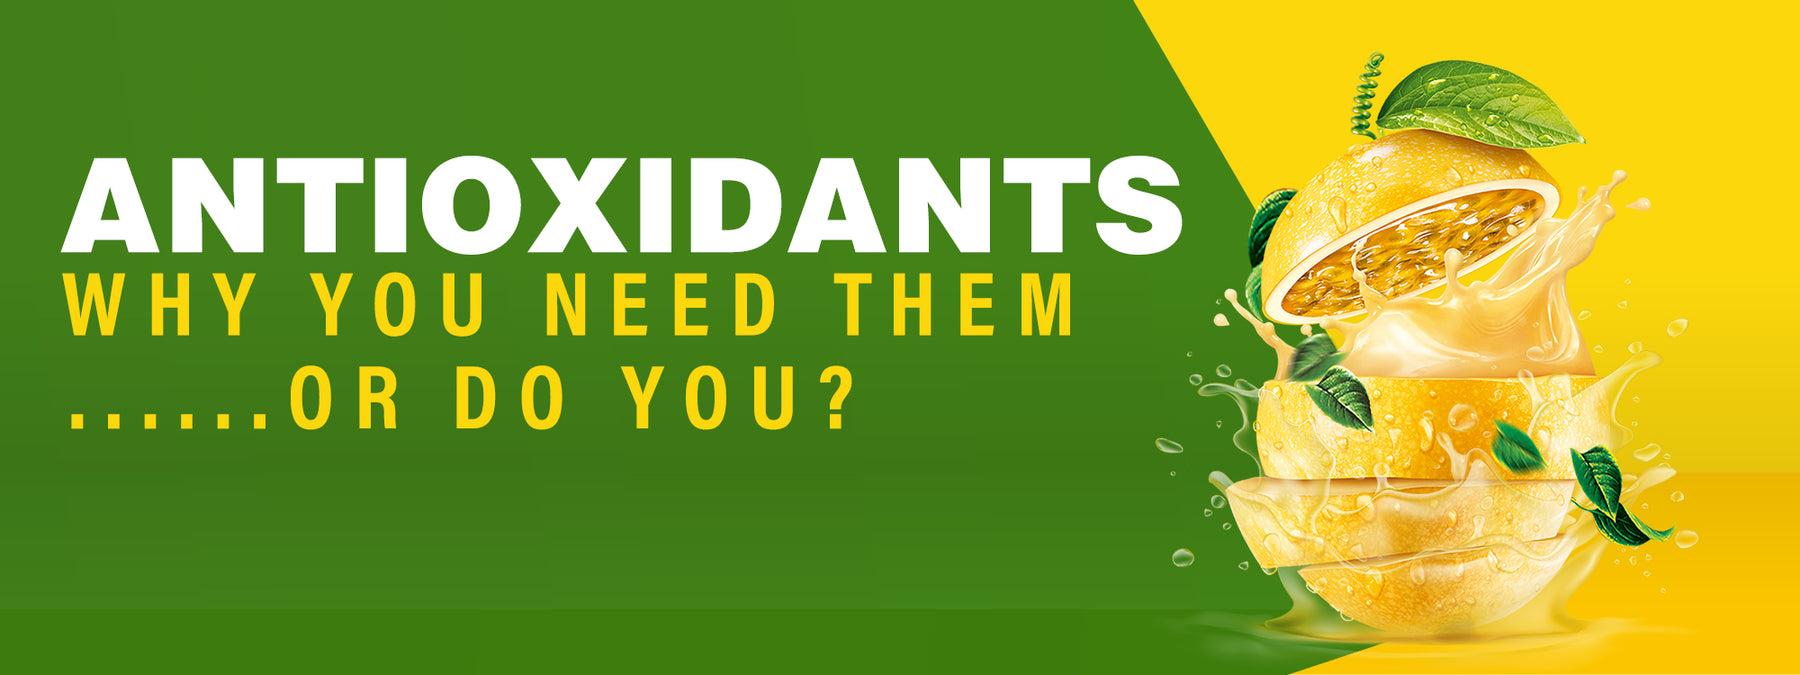 Antioxidants – Why You Need Them...or do you?